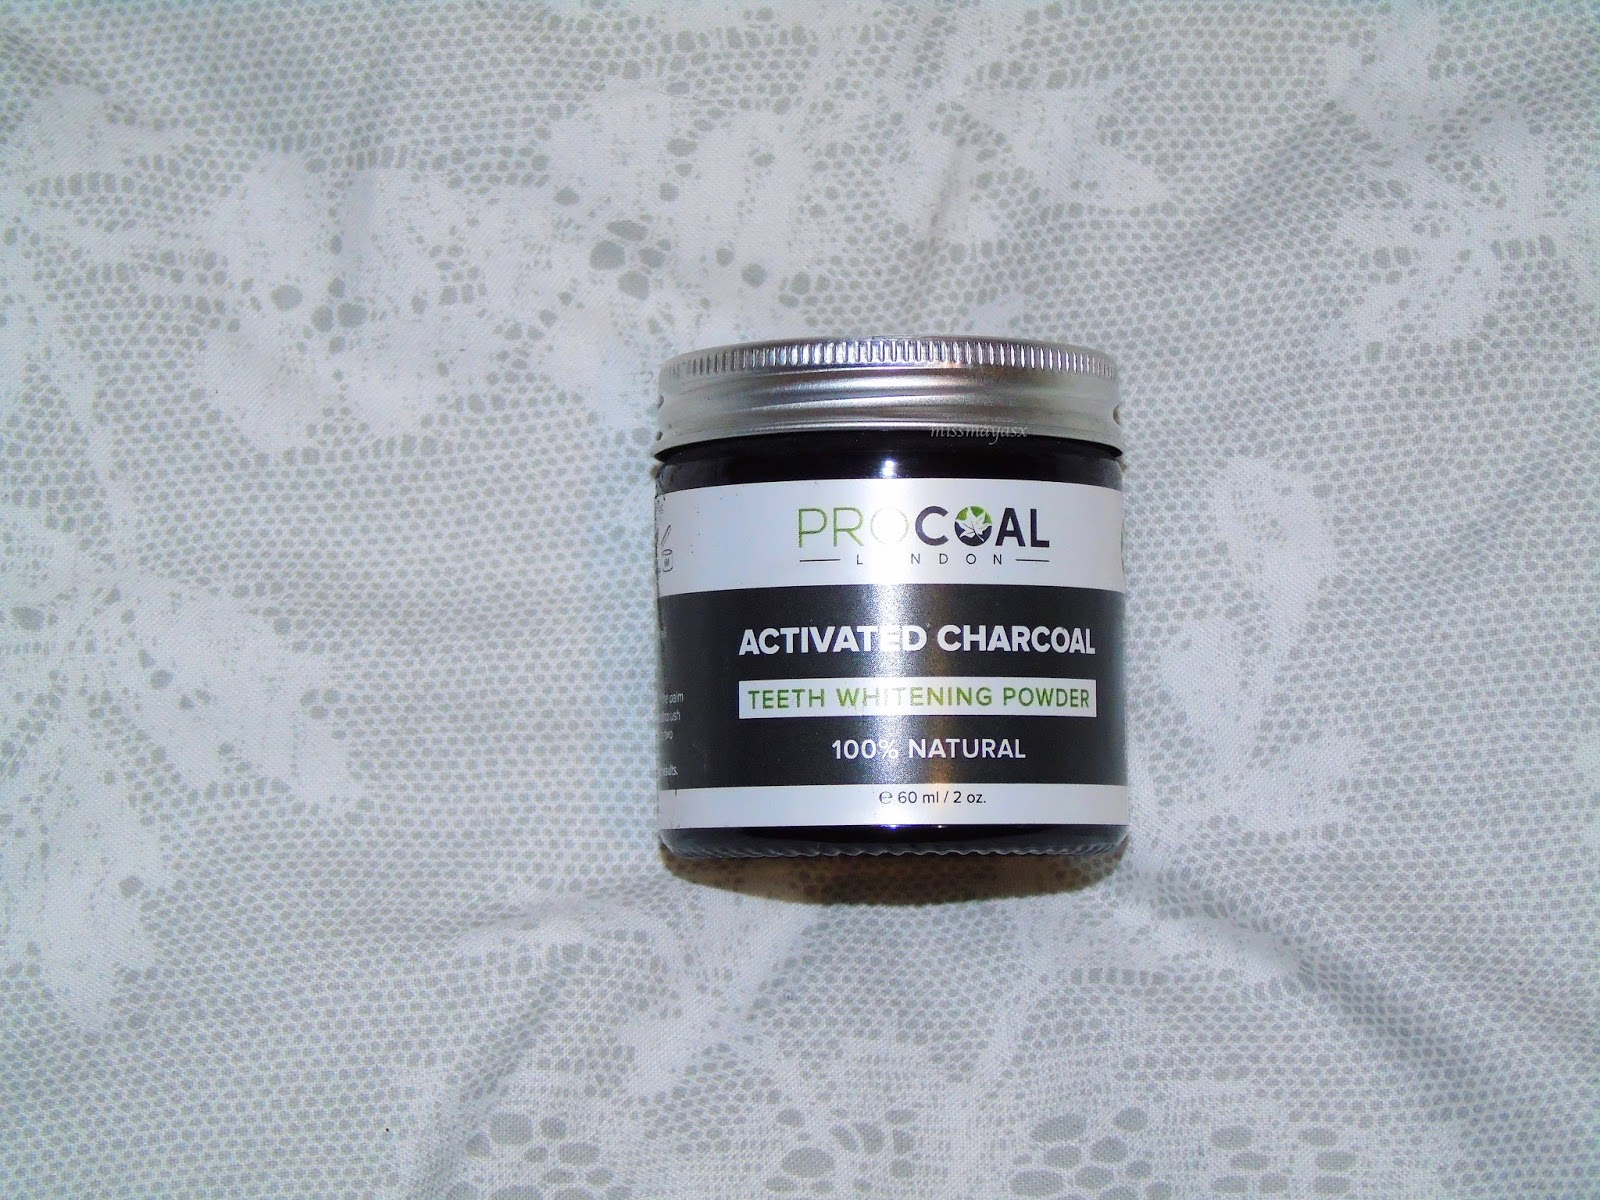 review procoal activated charcoal teeth whitening powder vogue by maya. Black Bedroom Furniture Sets. Home Design Ideas